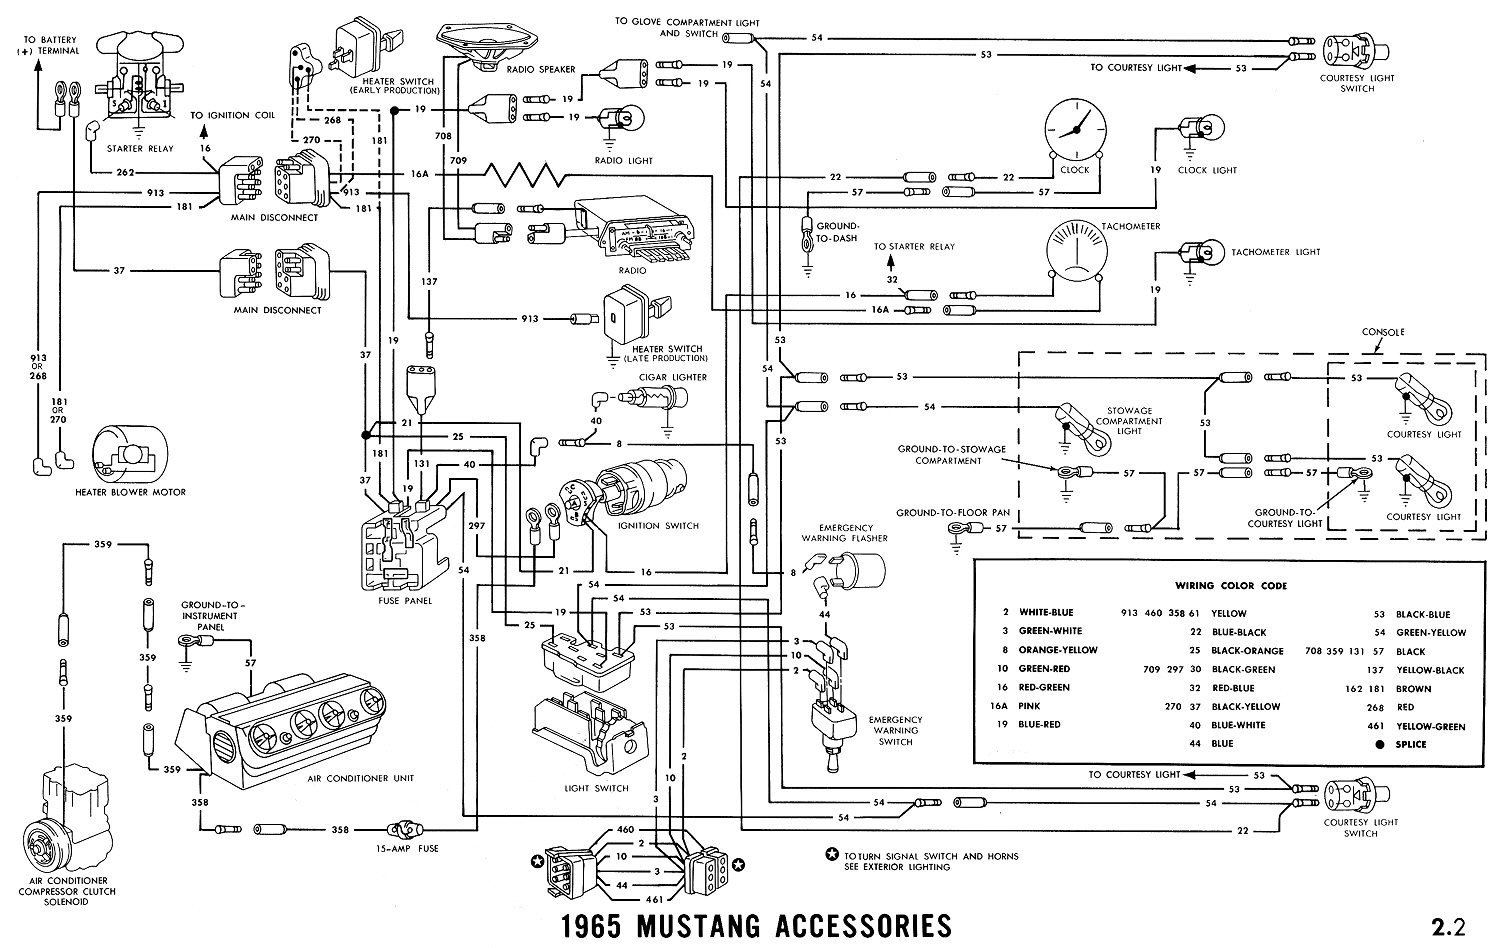 1983 mustang engine diagram tck kickernight de \u20221968 mustang wiring diagrams manual e books rh 25 made4dogs de